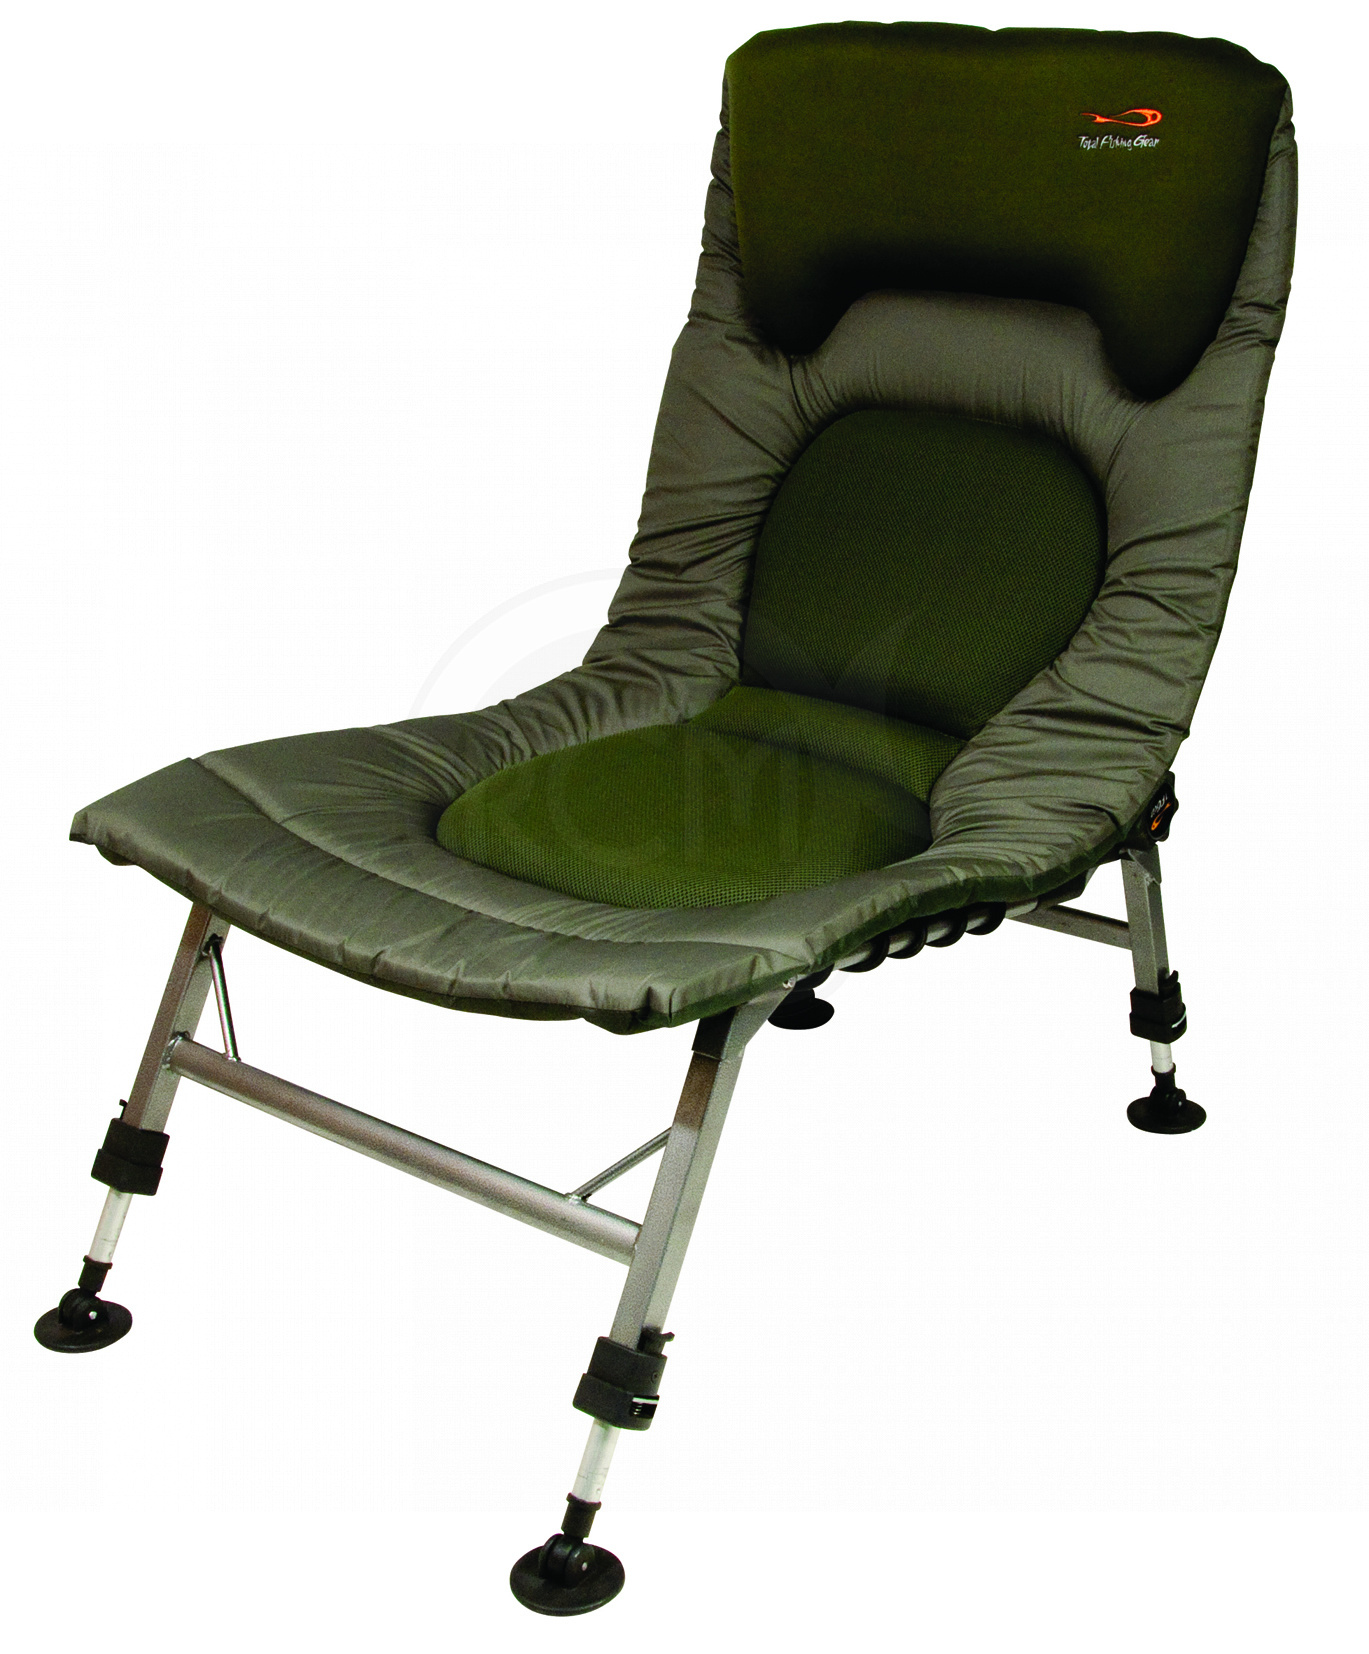 TFG křeslo Dave Lane Hardcore Recliner Chair